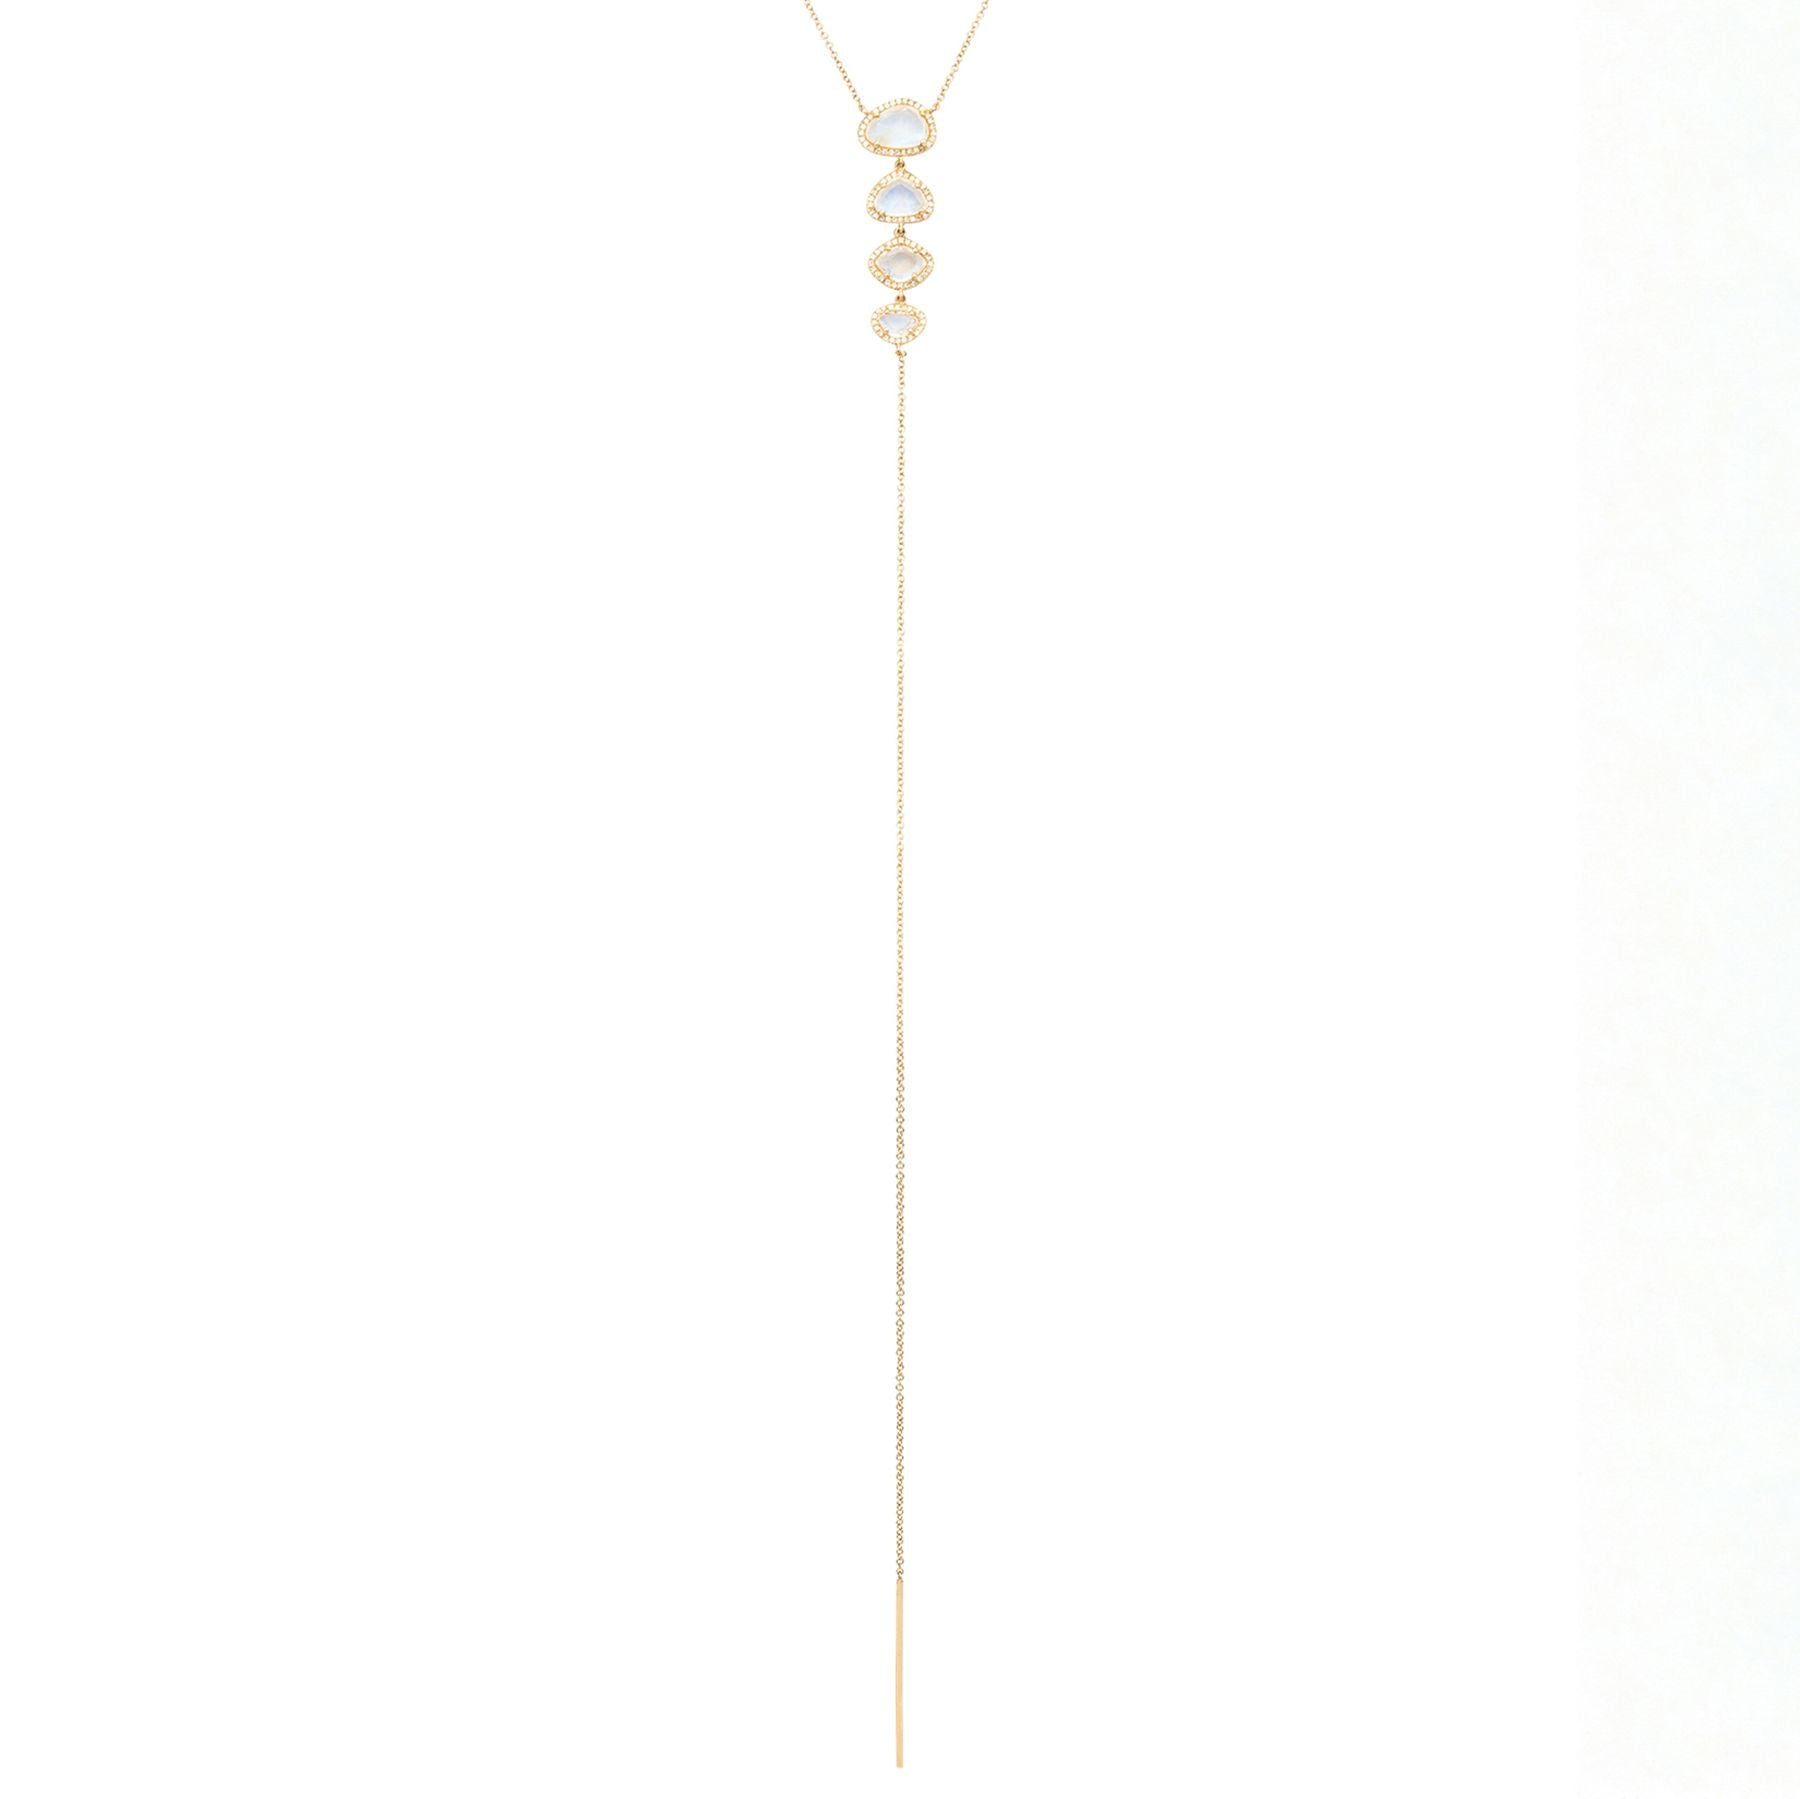 4 Moonstone Drop Lariat